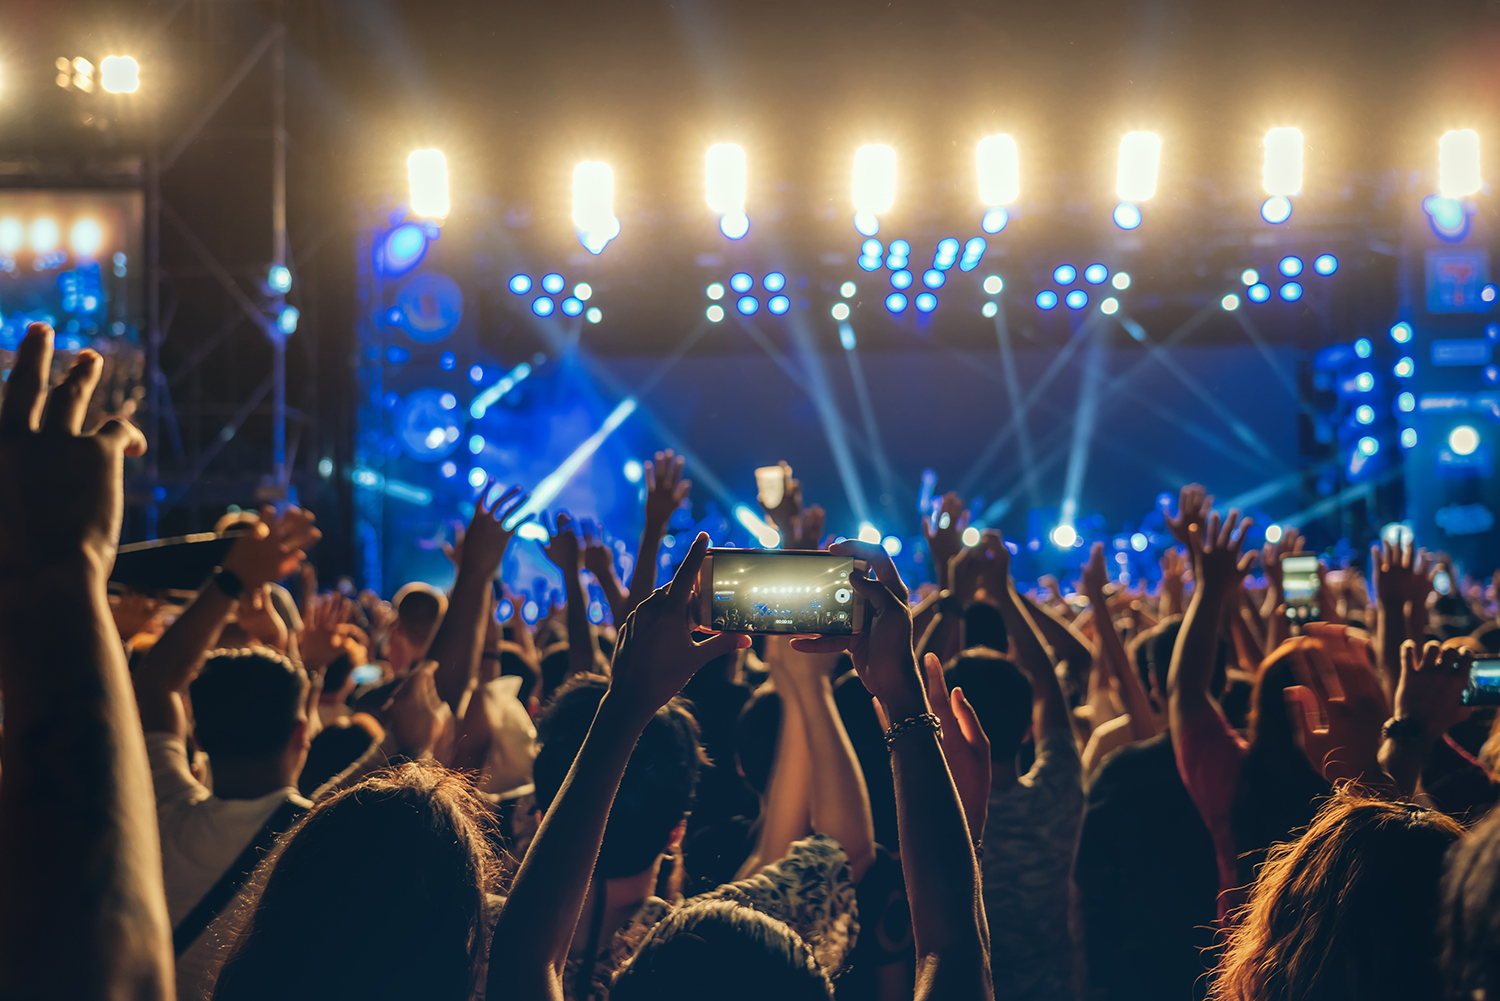 Concert crowd of Music fanclub hand using cellphone taking video